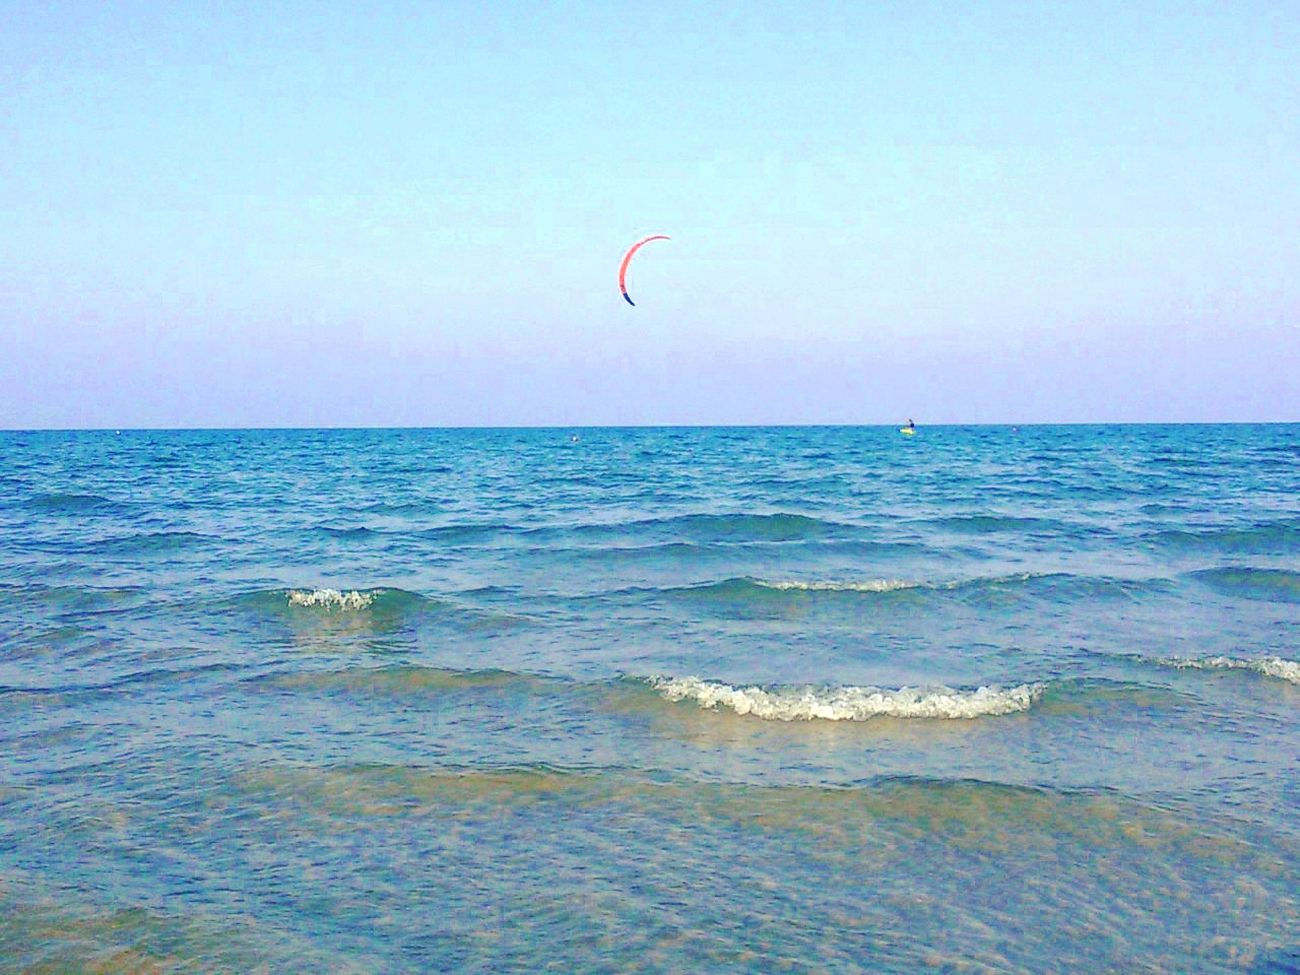 Sea_collection Horizon Over Water Kiteboarding Tranquil Scene Adventure Water Beach Enjoyment Extreme Sports Colorful Likeforlike Rimini Beautiful Sky Beach Life Photography Focus Followme Nature Sunny Day Sunnydays First Eyeem Photo